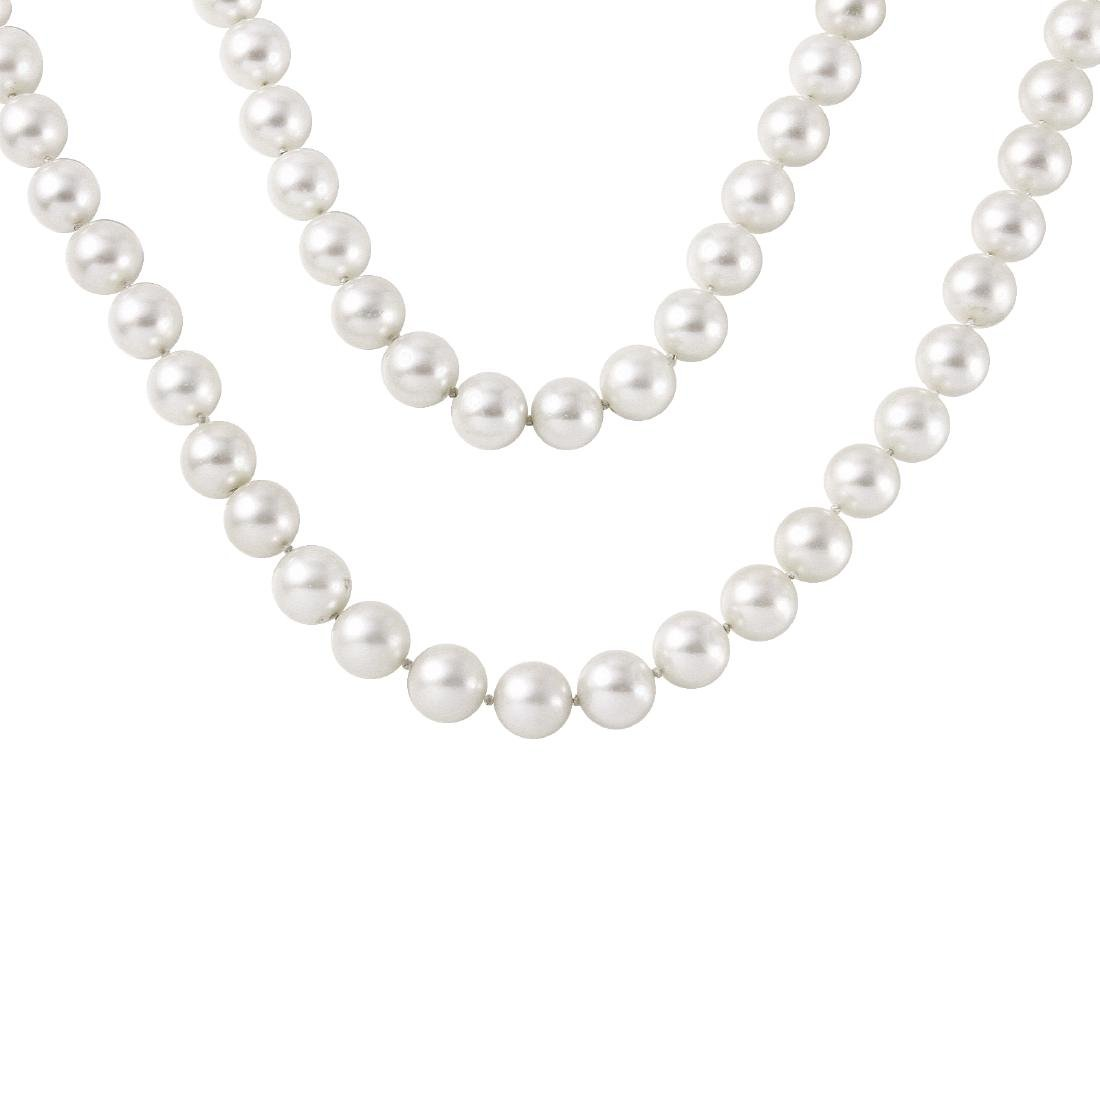 Freshwater Cutured Pearl Necklace